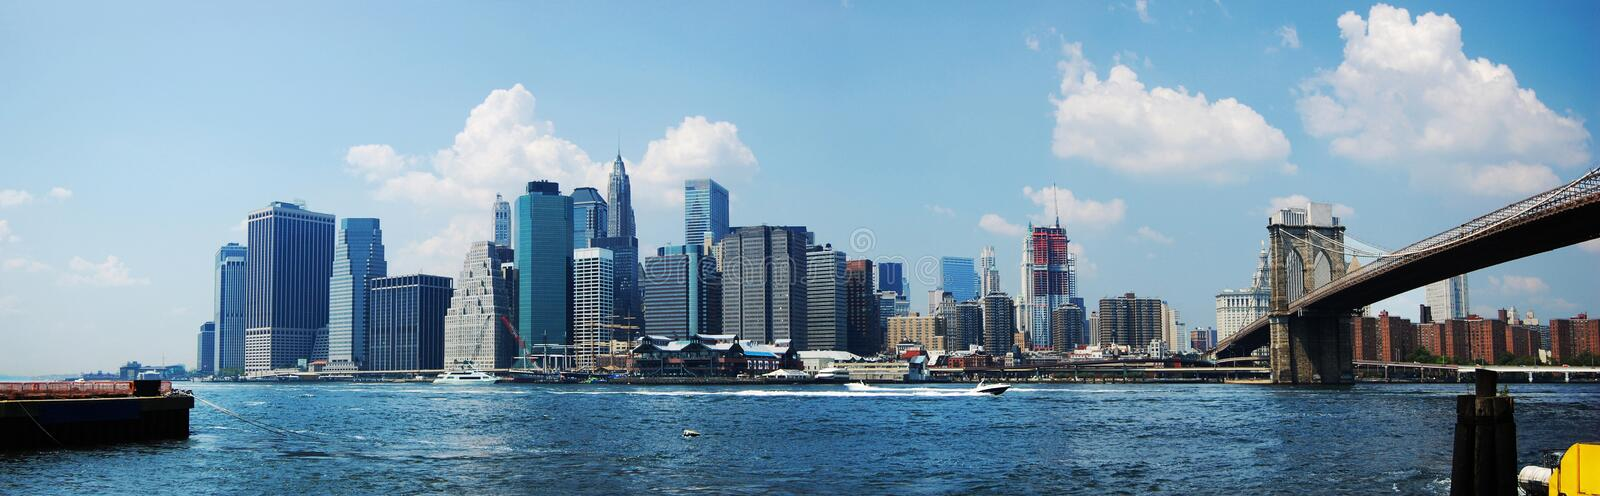 Download New York City Skyline stock image. Image of architecture - 14965359